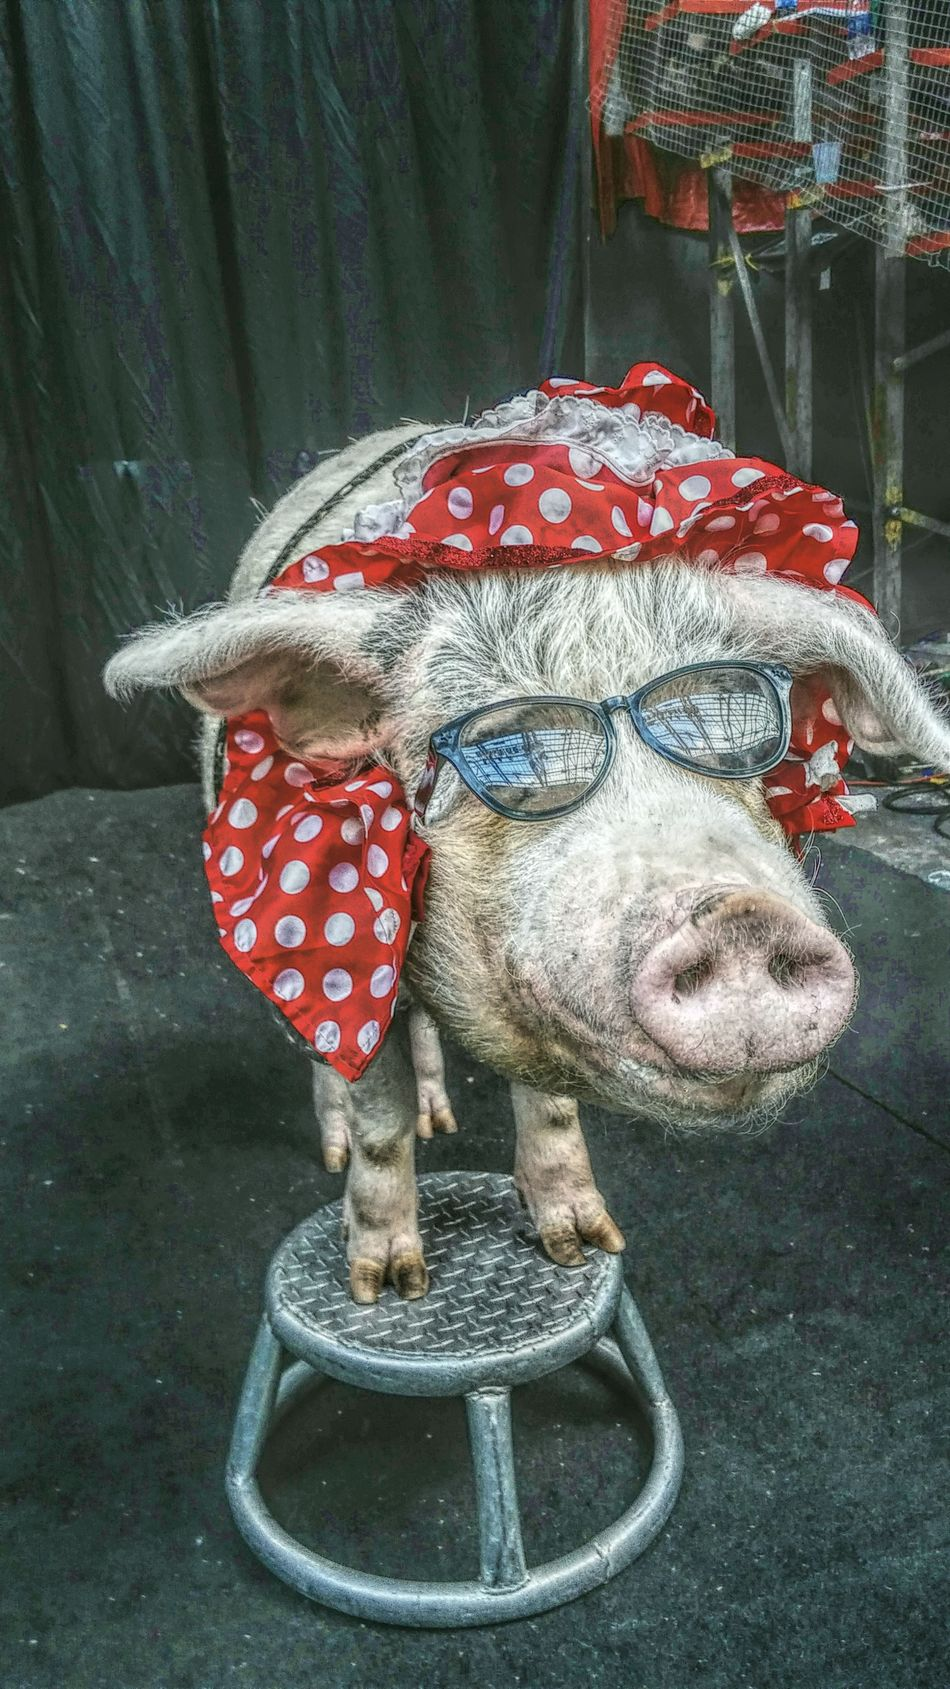 Pig Sunglasses Circus Oink